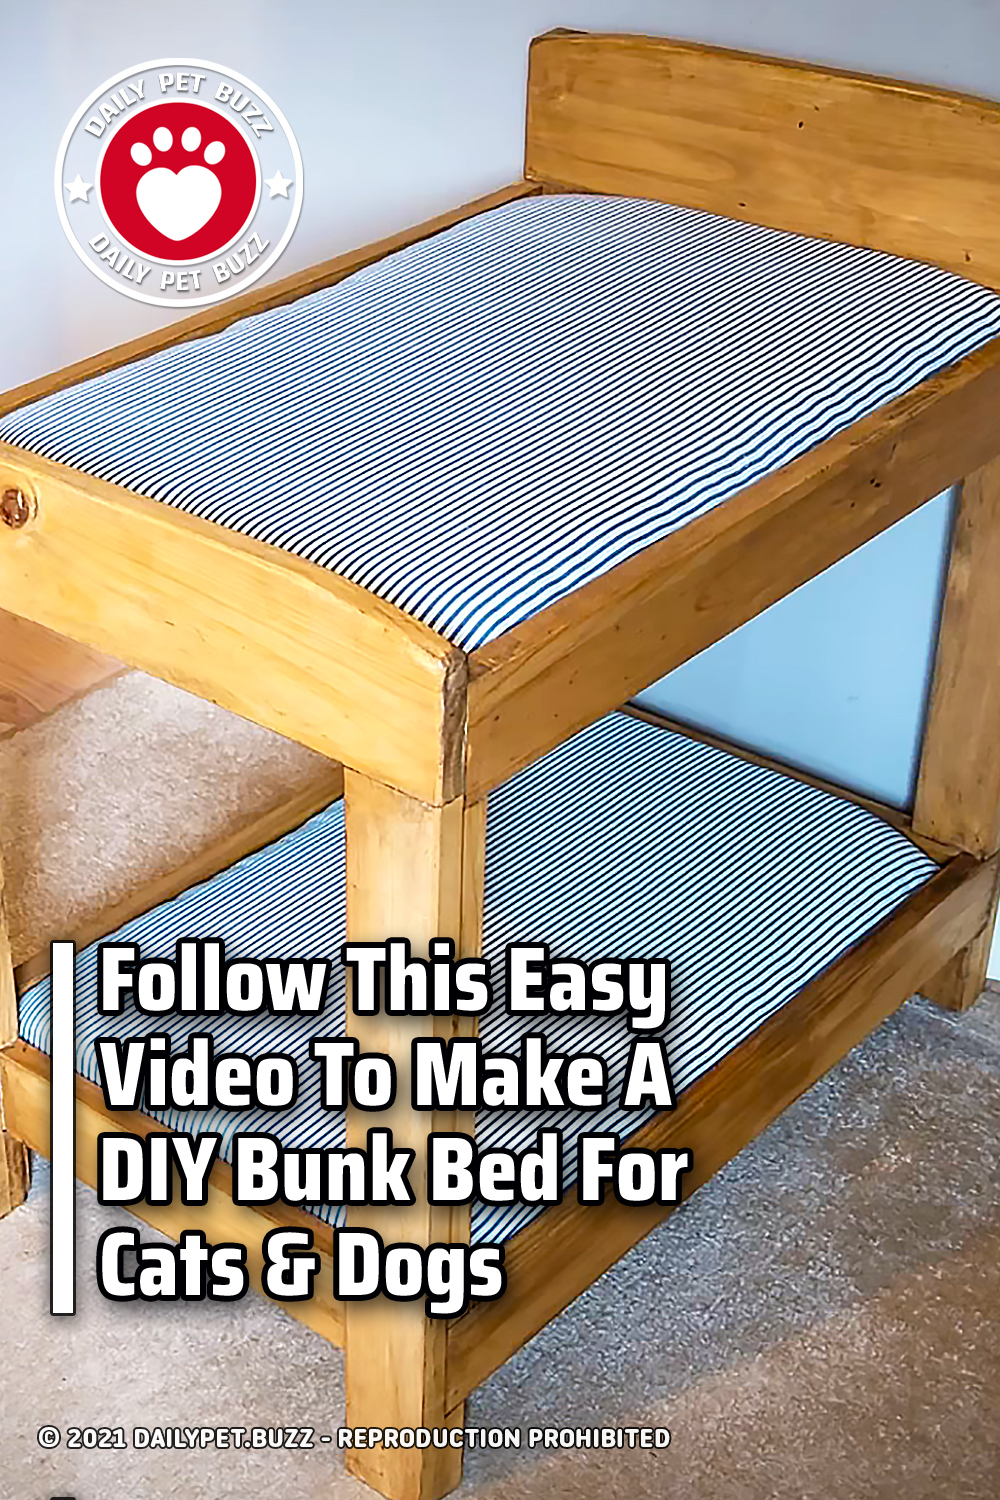 Follow This Easy Video To Make A DIY Bunk Bed For Cats & Dogs